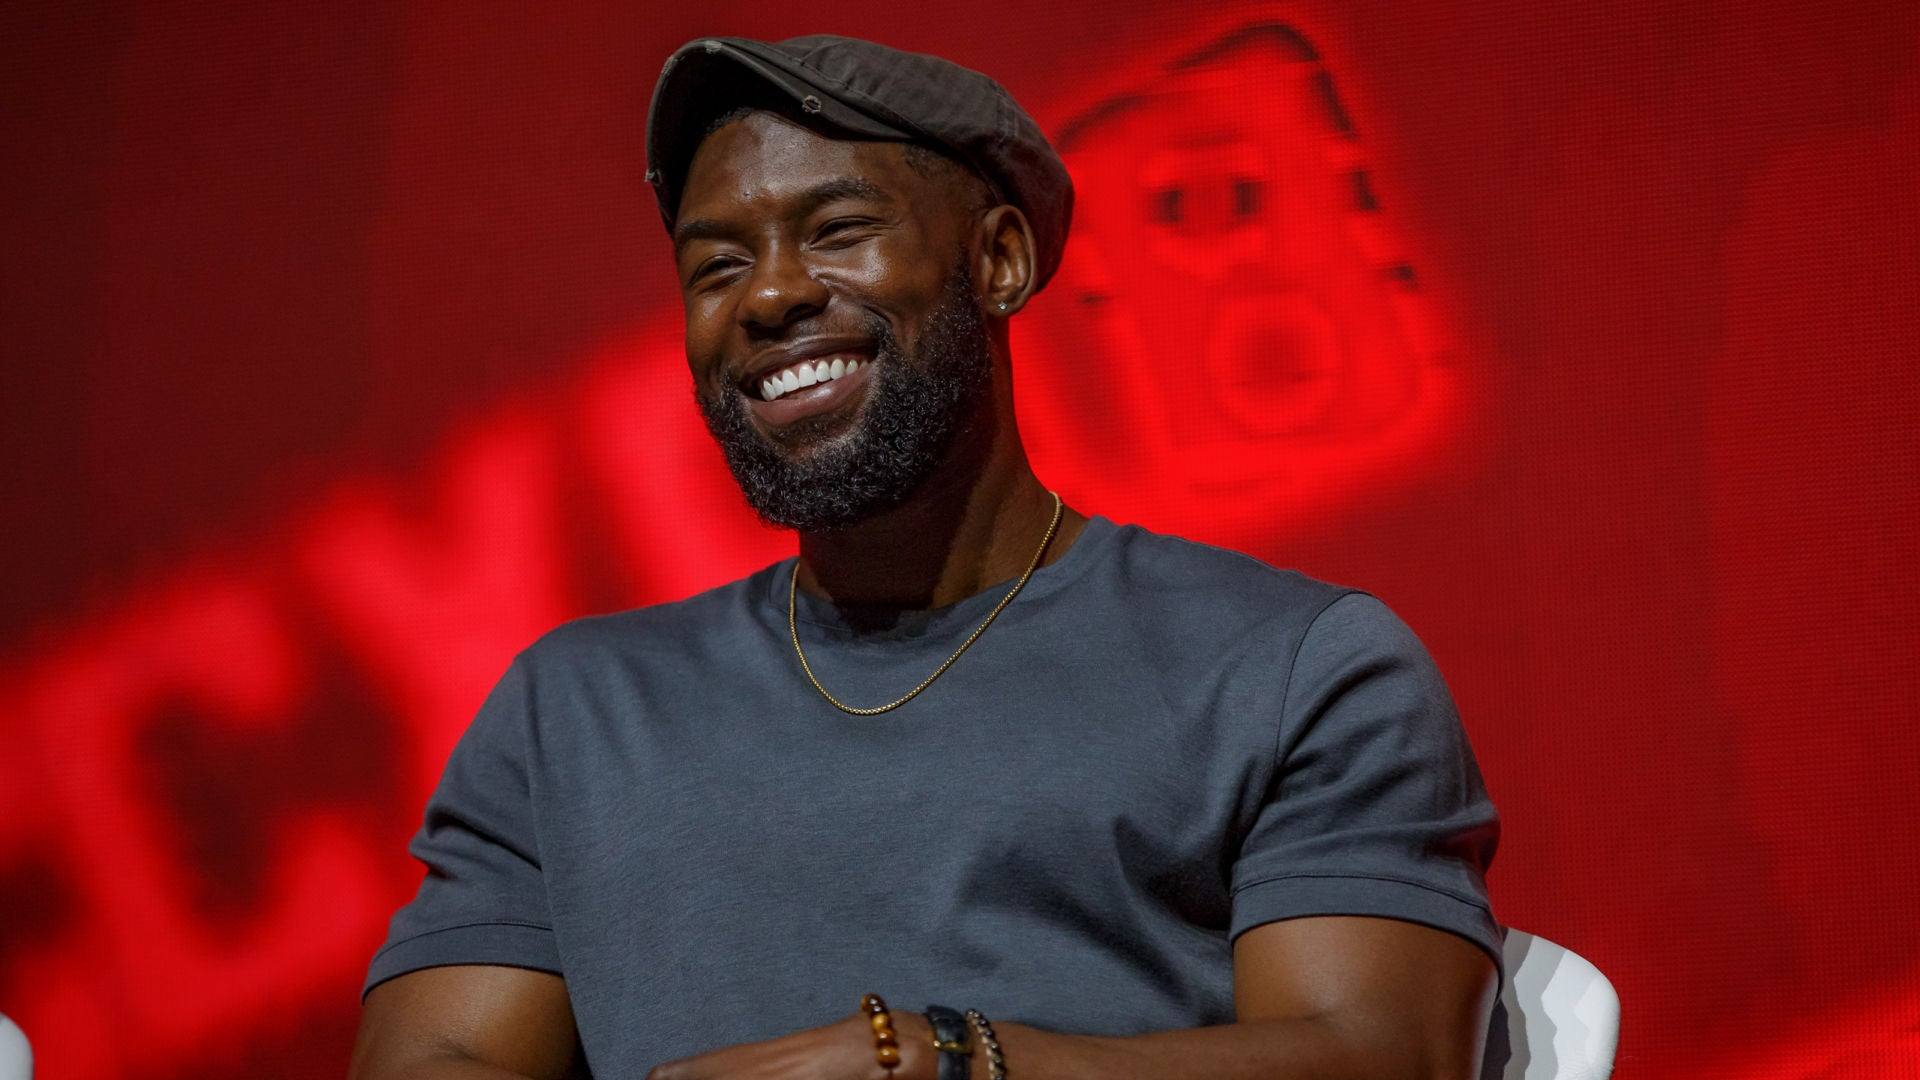 'Moonlight' and 'Bird Box' Actor Trevante Rhodes Is Reportedly Engaged